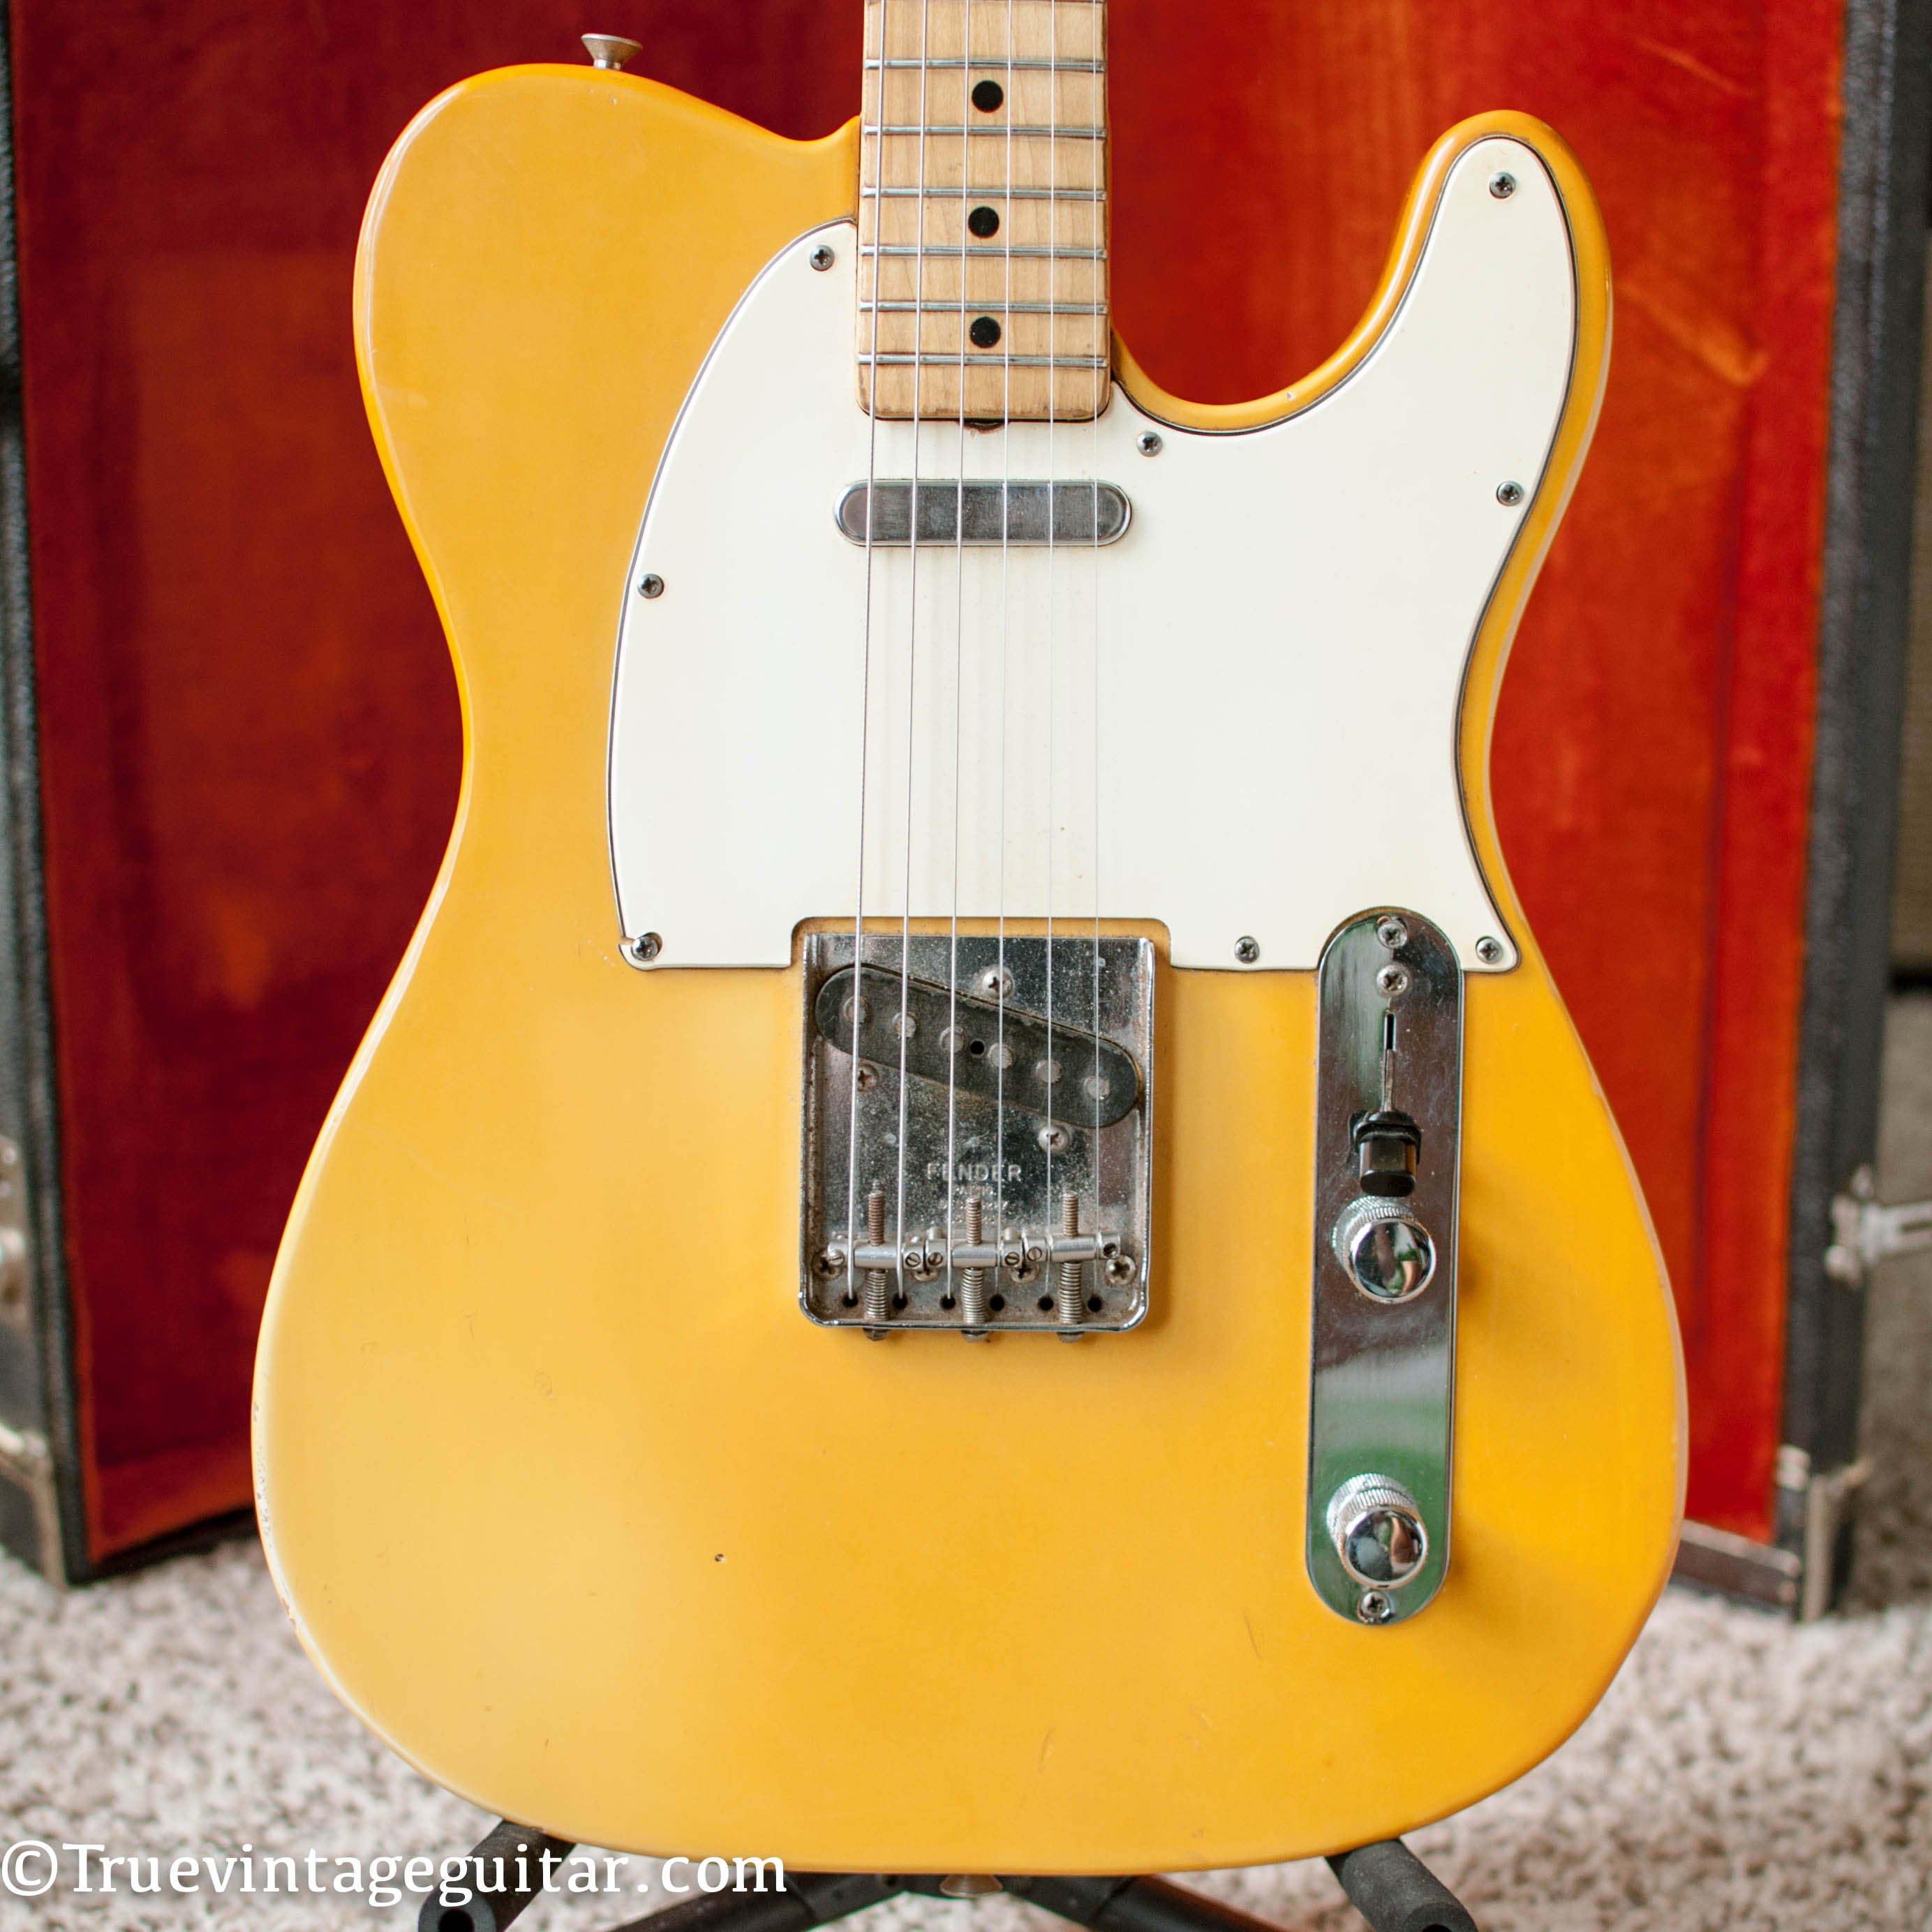 vintage 1969 Fender Telecaster yellowed Olympic White guitar